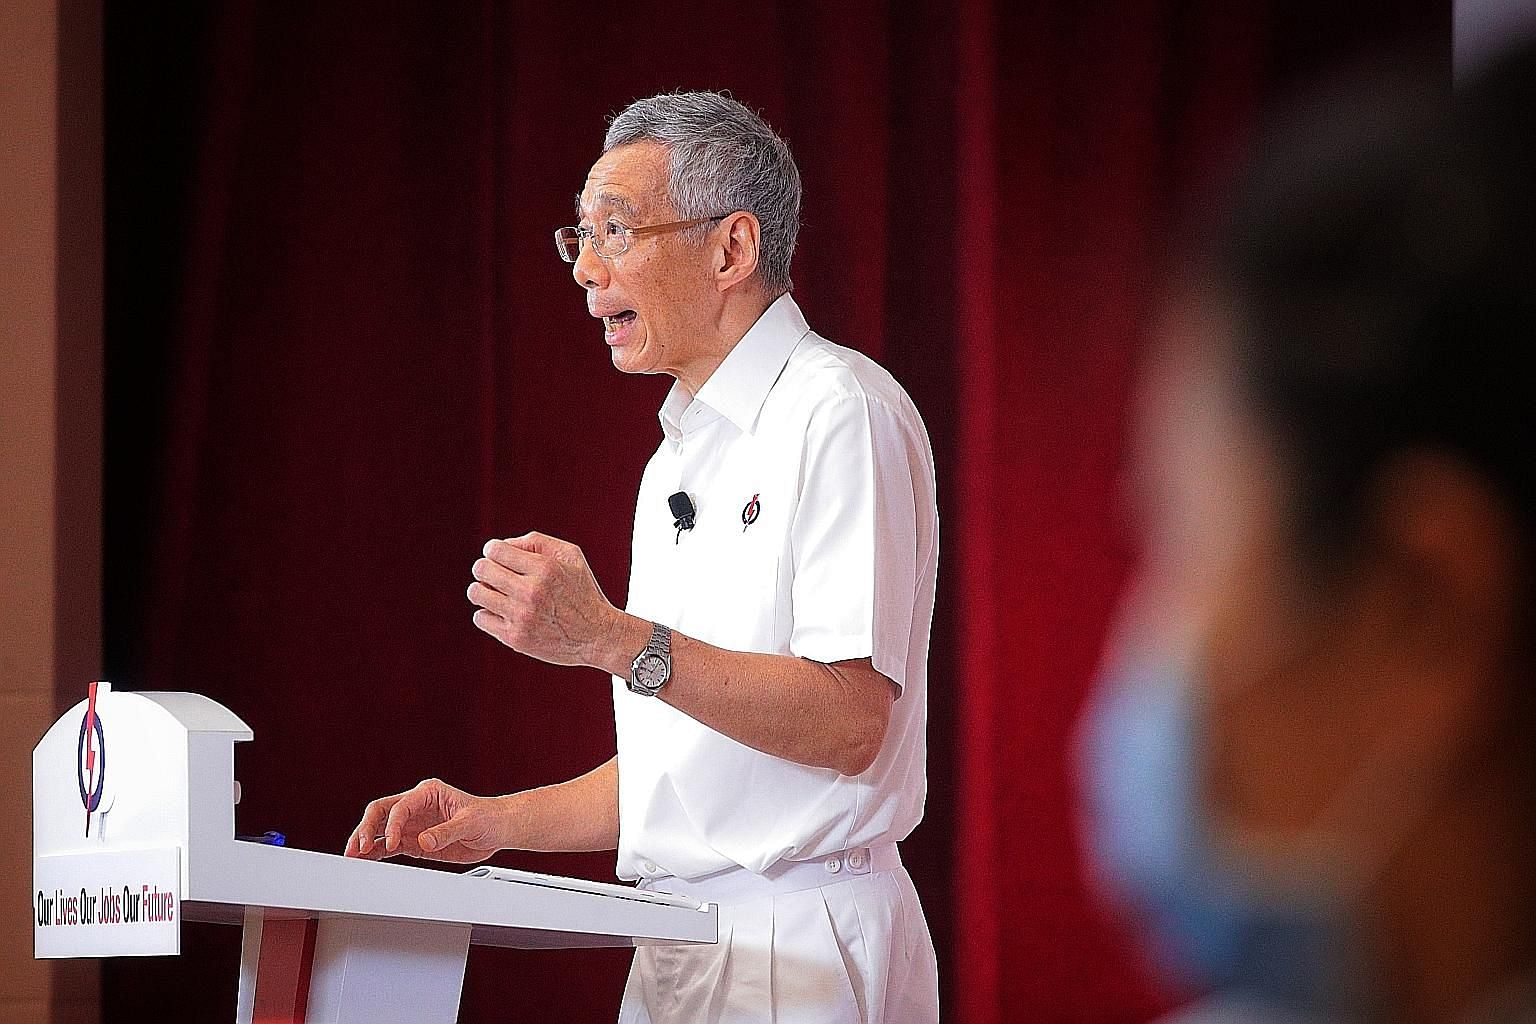 Prime Minister Lee Hsien Loong at the Fullerton election rally, which was streamed live on Facebook and YouTube yesterday. ST PHOTO: JASON QUAH